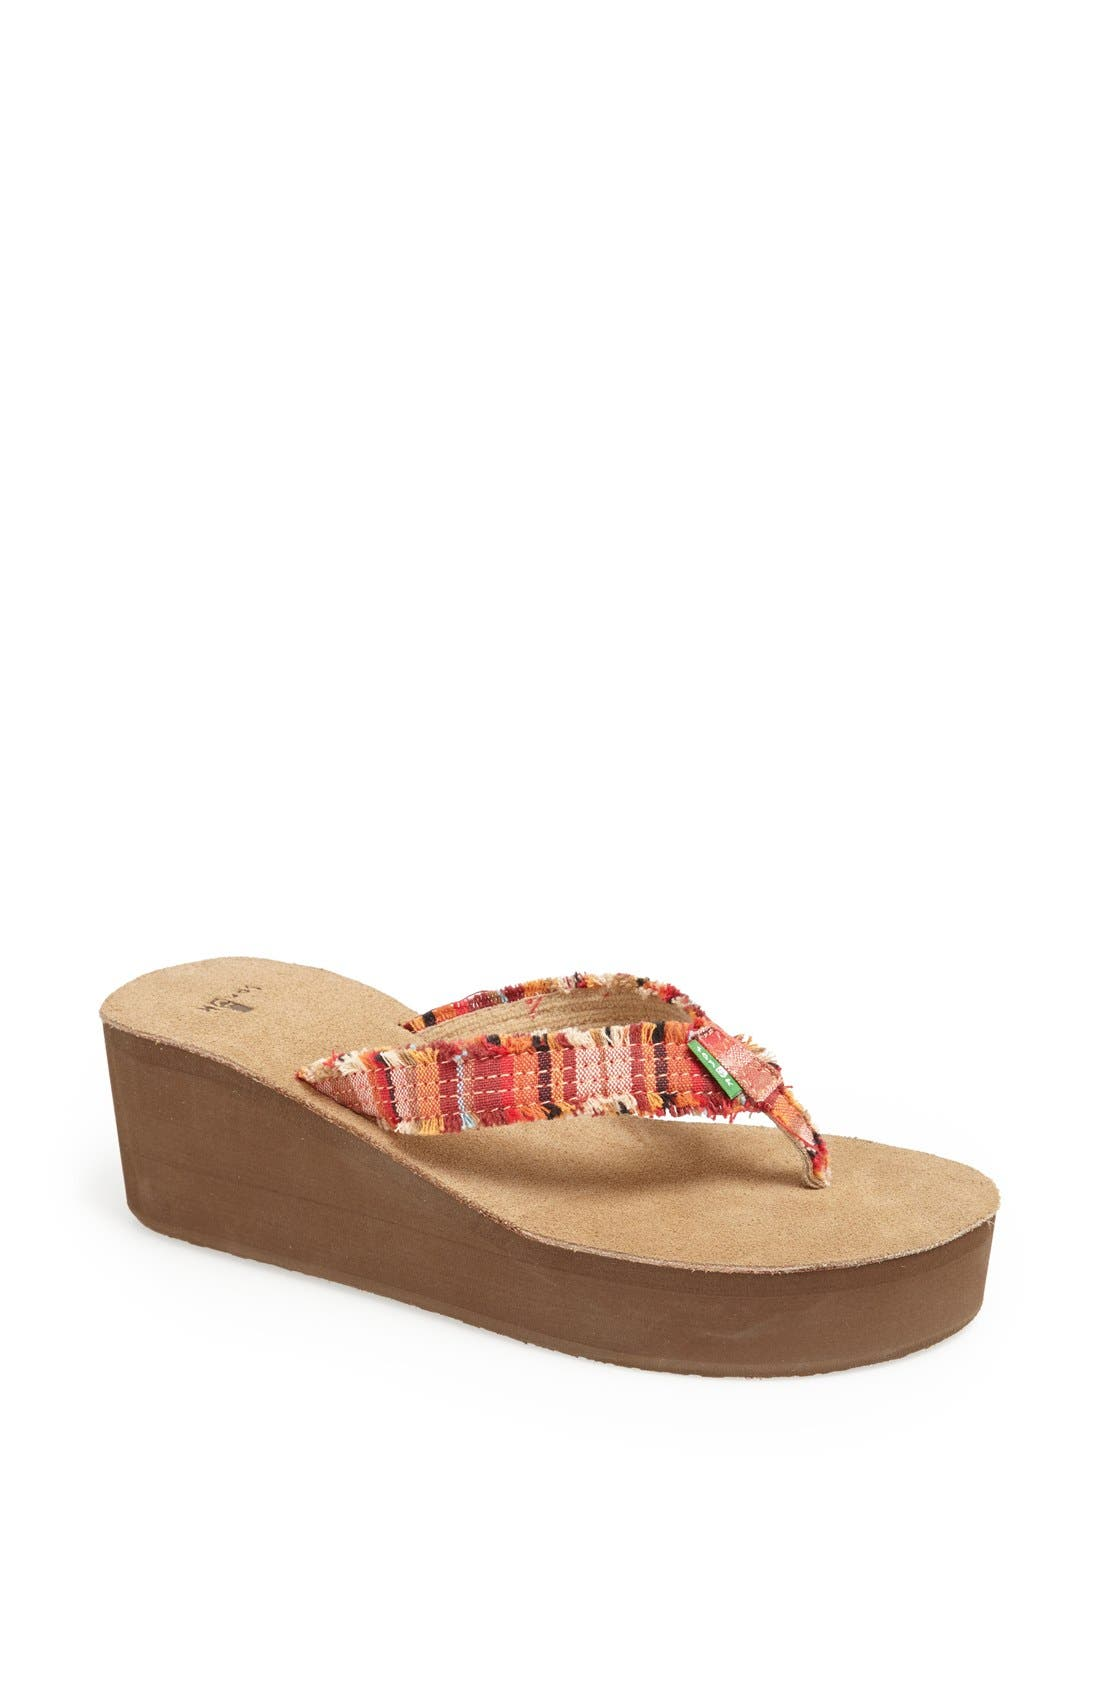 Main Image - Sanuk 'Fraidy Cat' Wedge Flip Flop